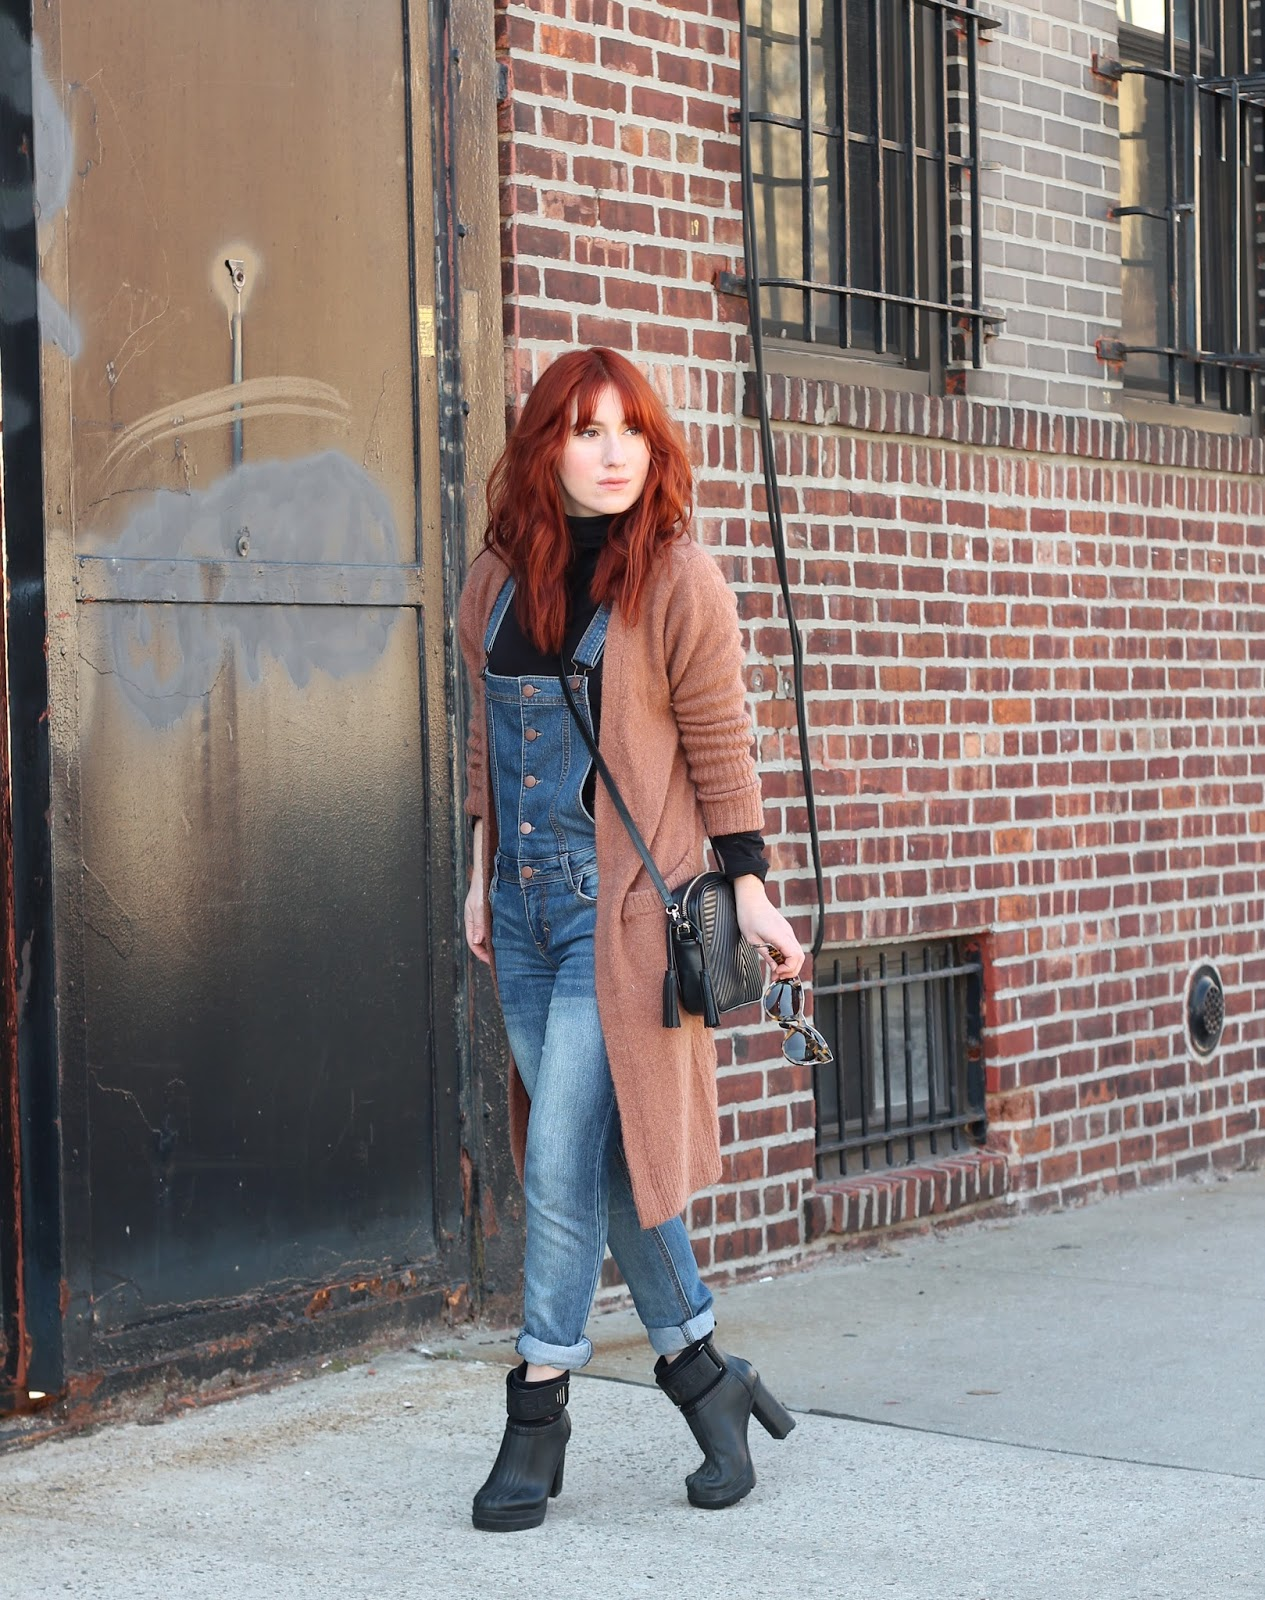 overalls, how to style overalls, cute overall outfits, overall outfit ideas, sorel medina outfits, chicwish sweater, overall style